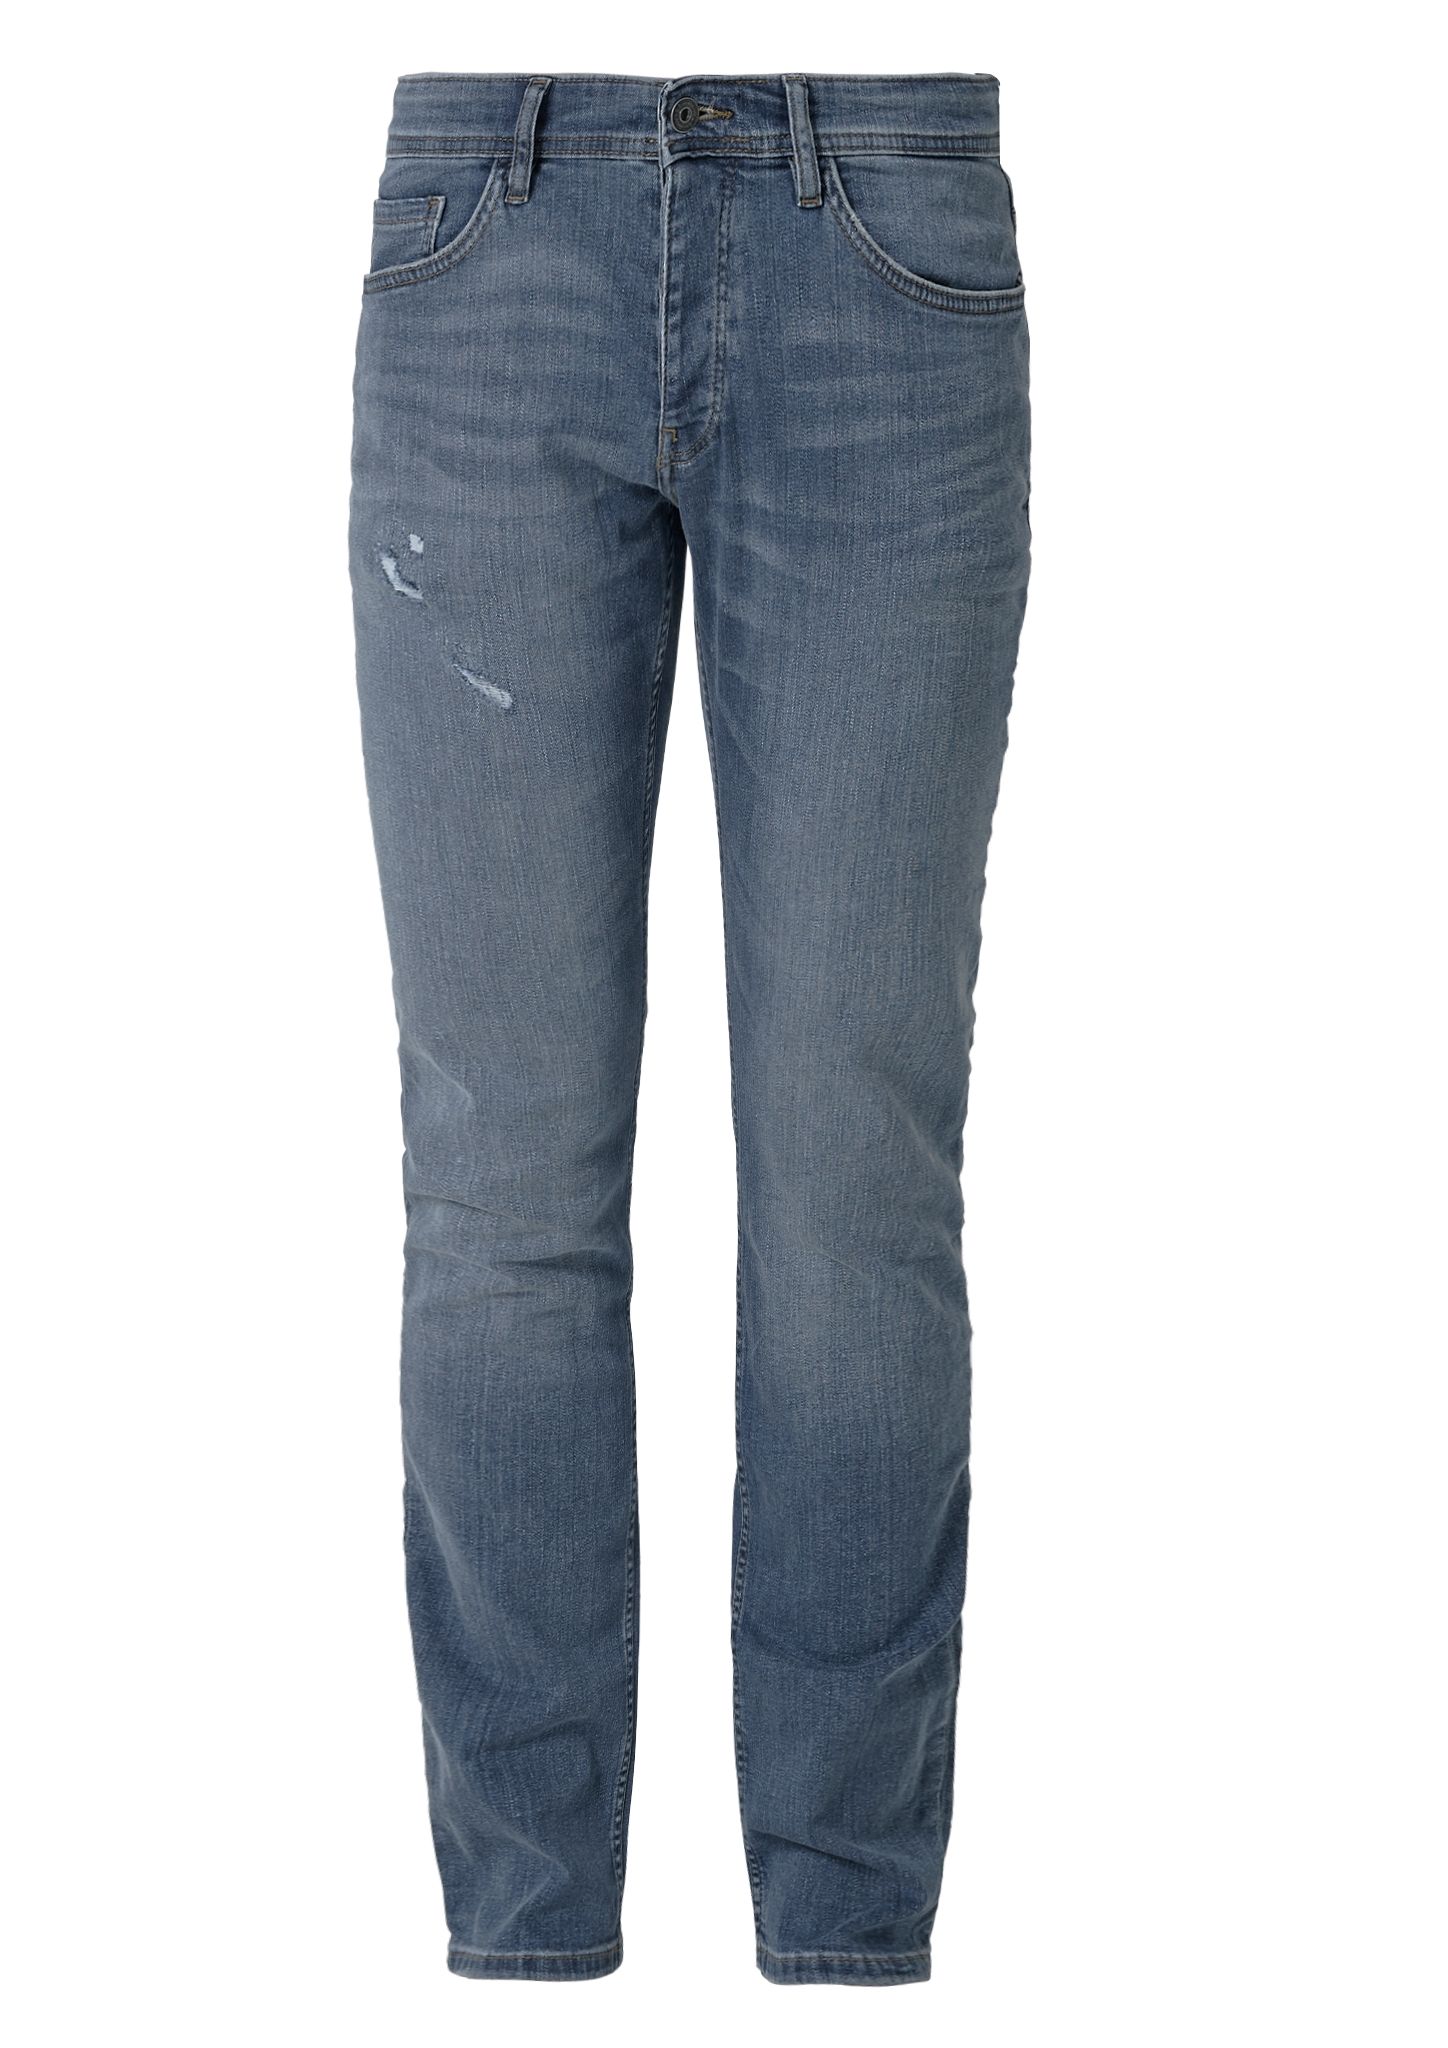 Stretchjeans | Bekleidung > Jeans | Blau | 98% baumwolle -  2% elasthan | Q/S designed by